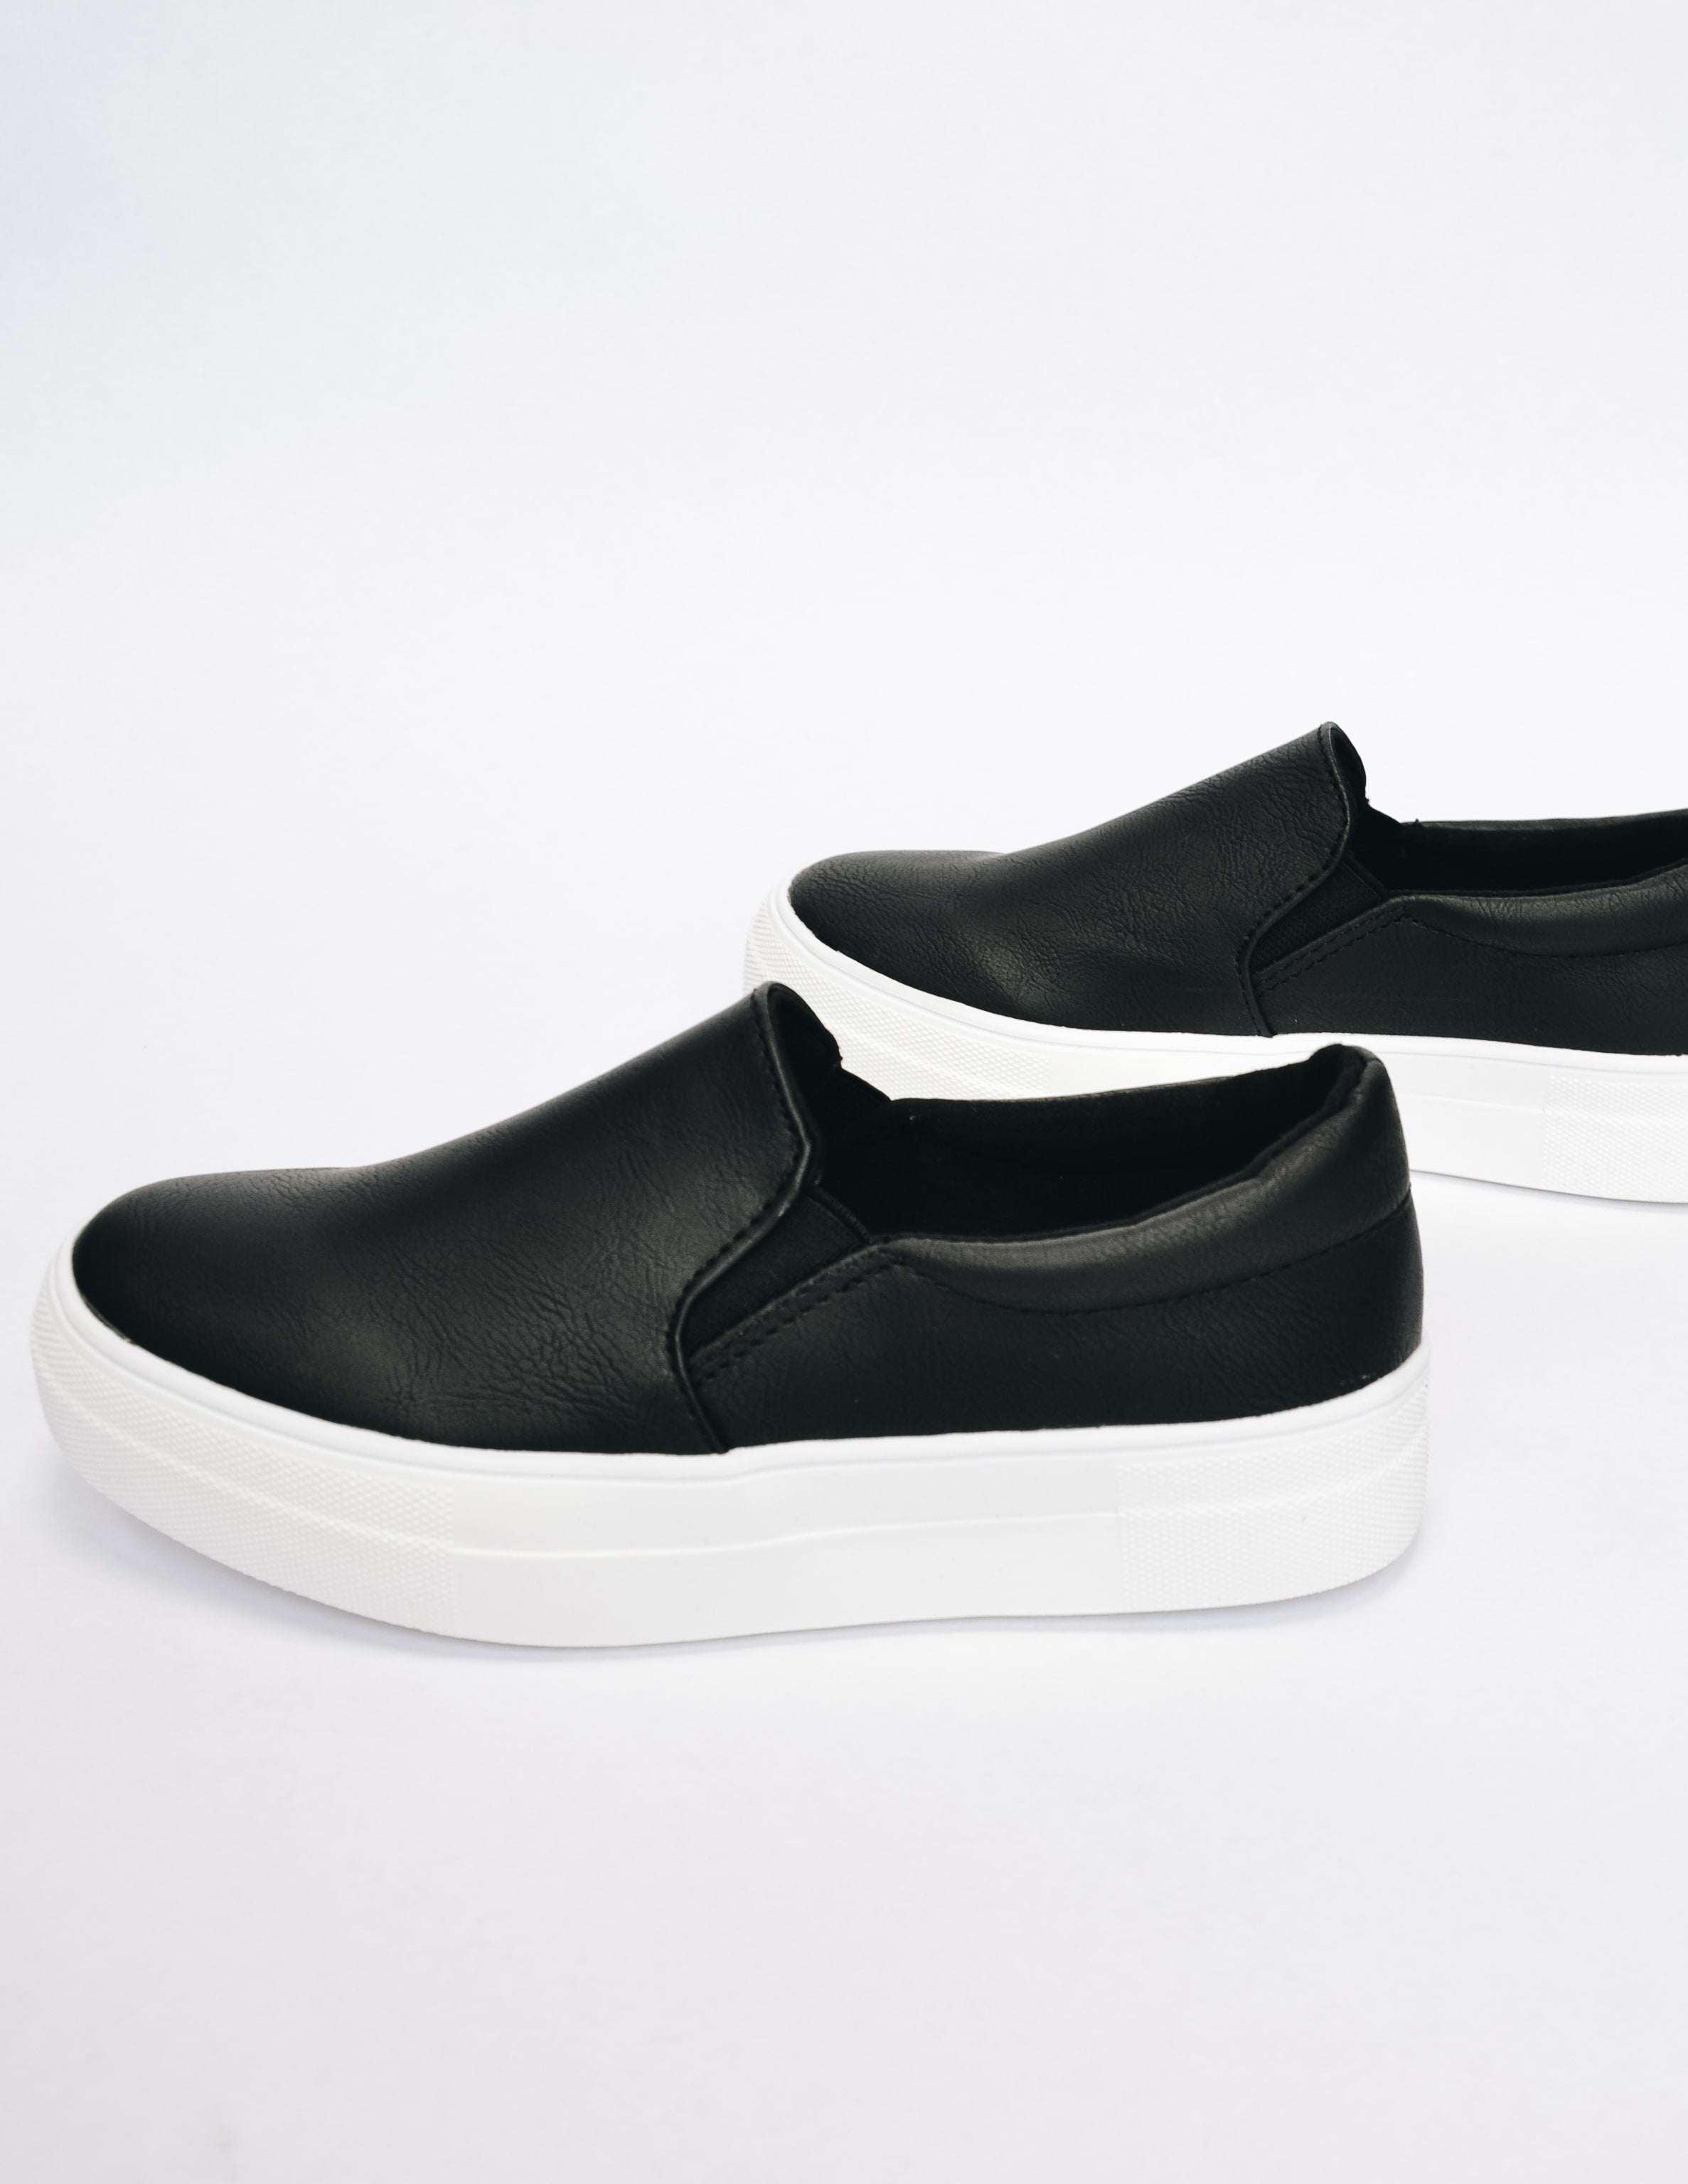 Side view of black slip on sneaker showing off elastic gores